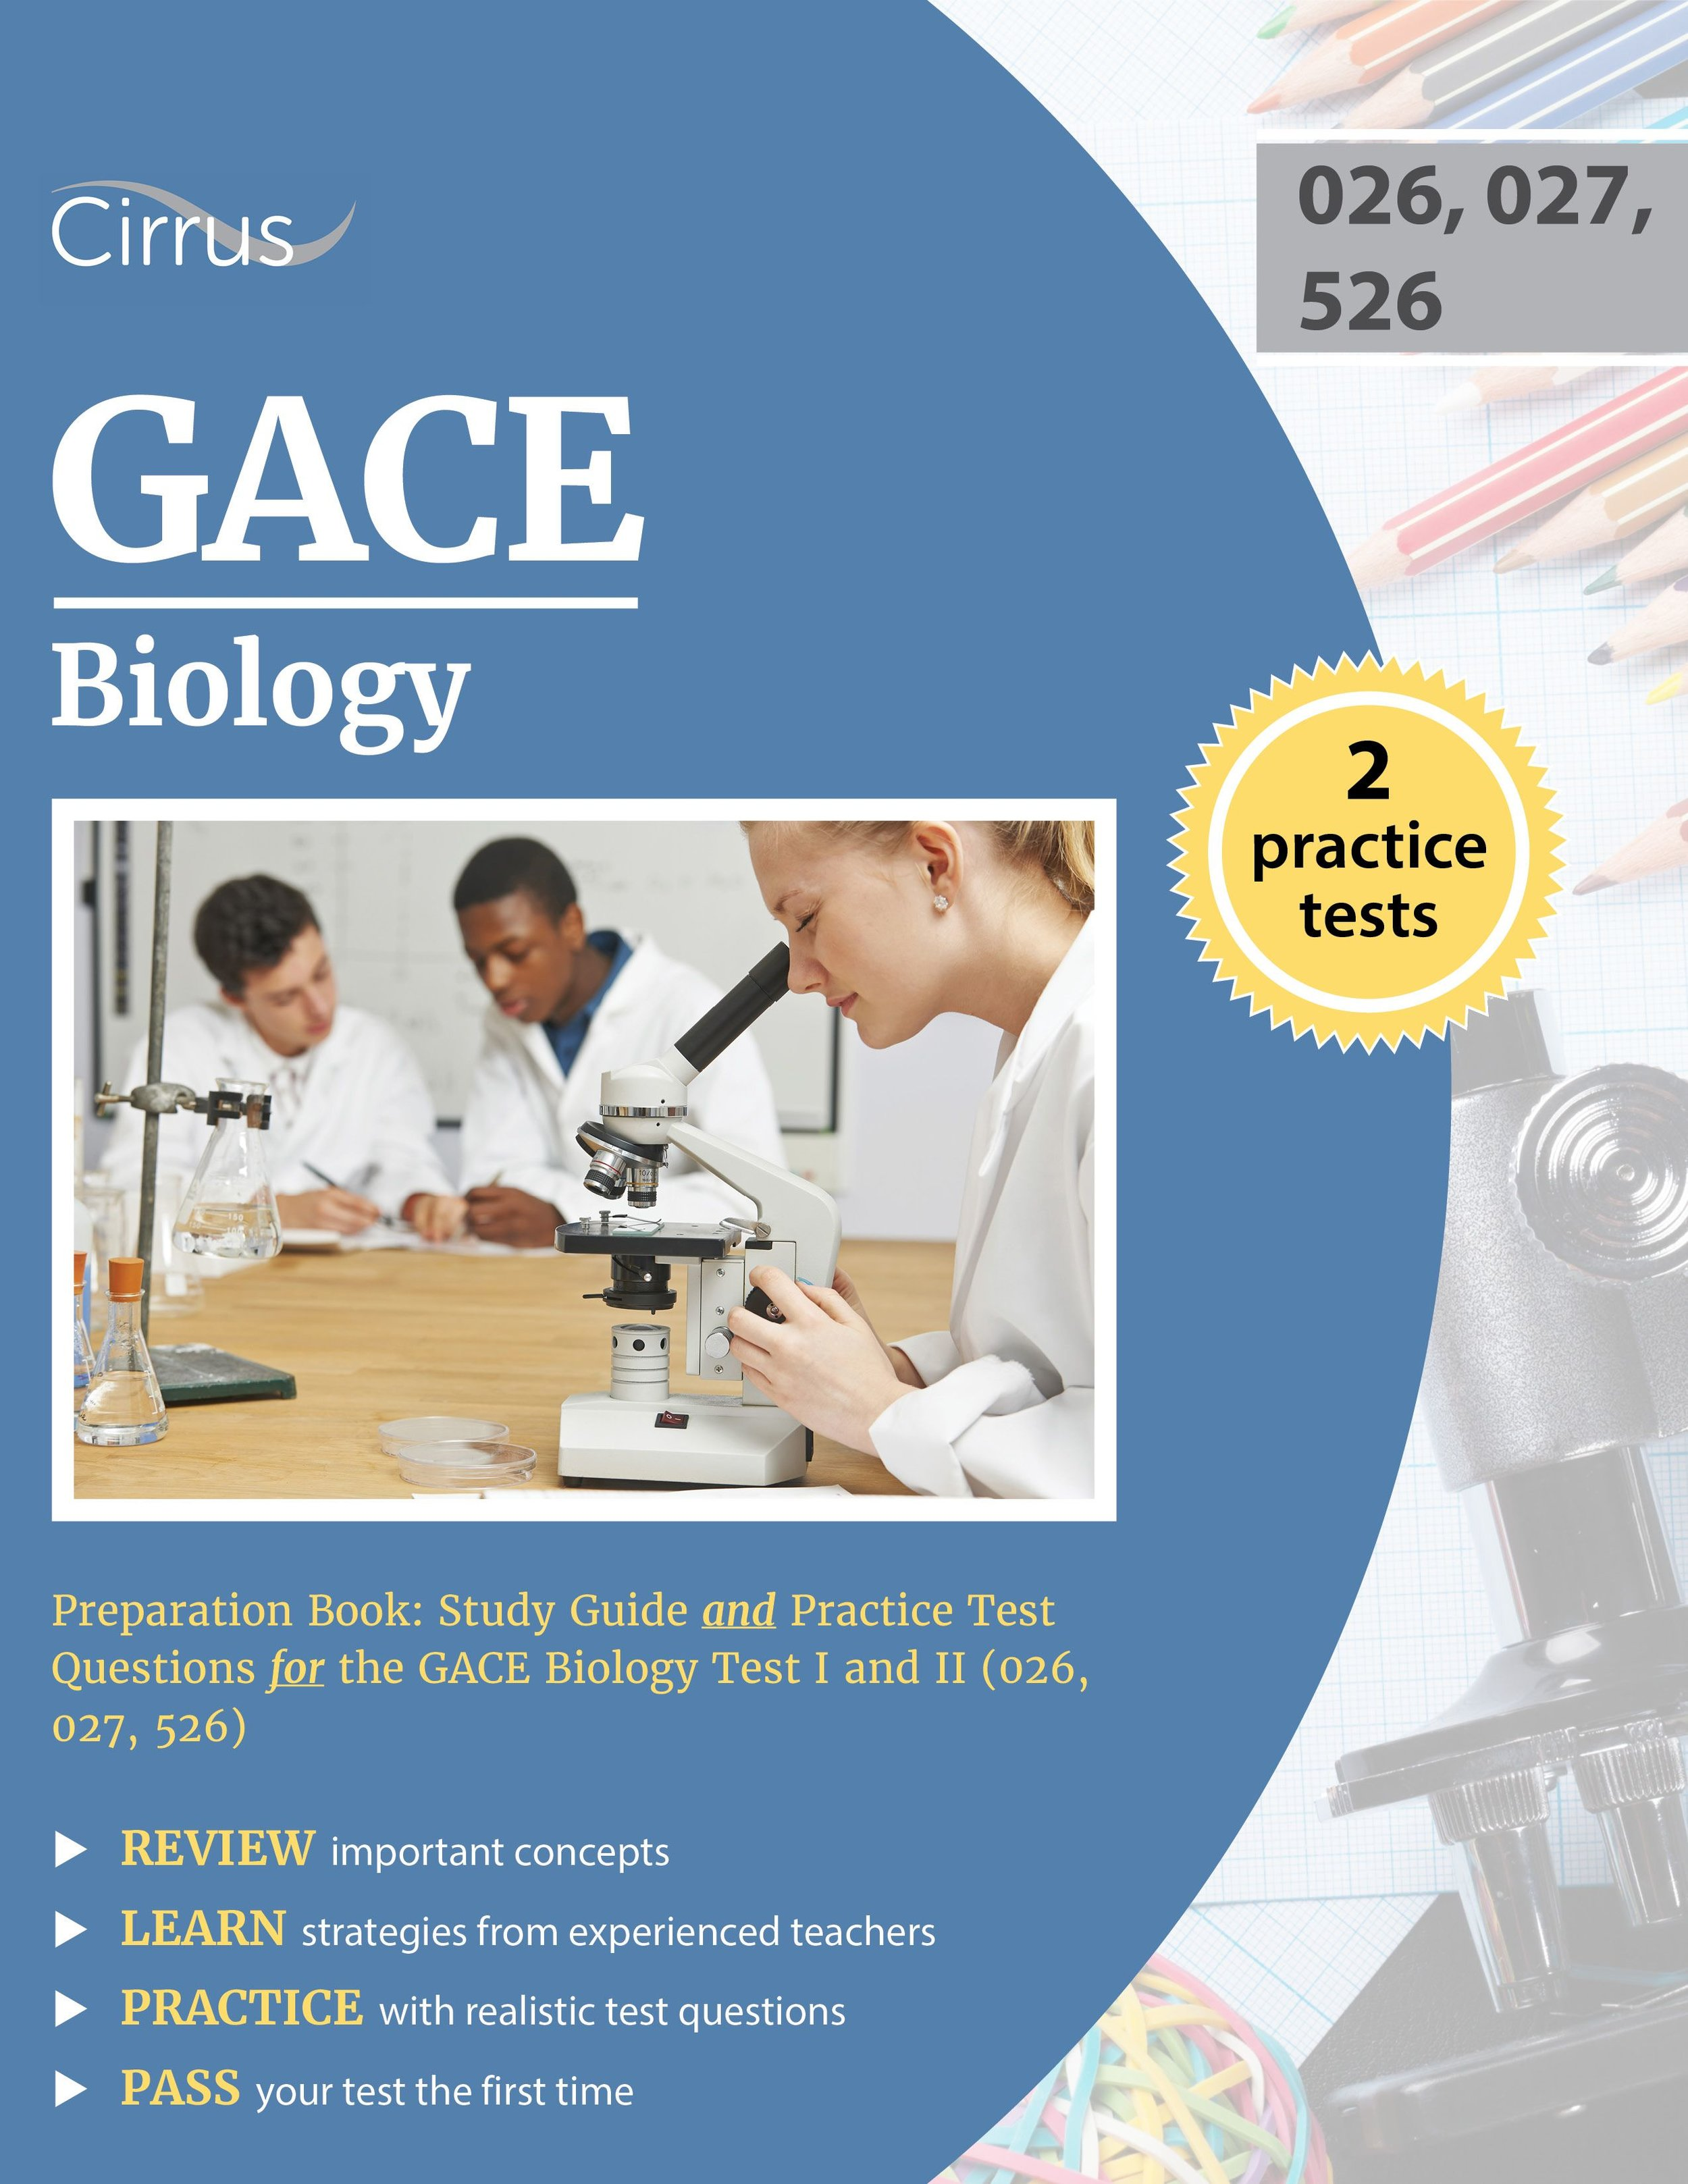 GACE Biology Preparation (026, 027, 526) Study Guide